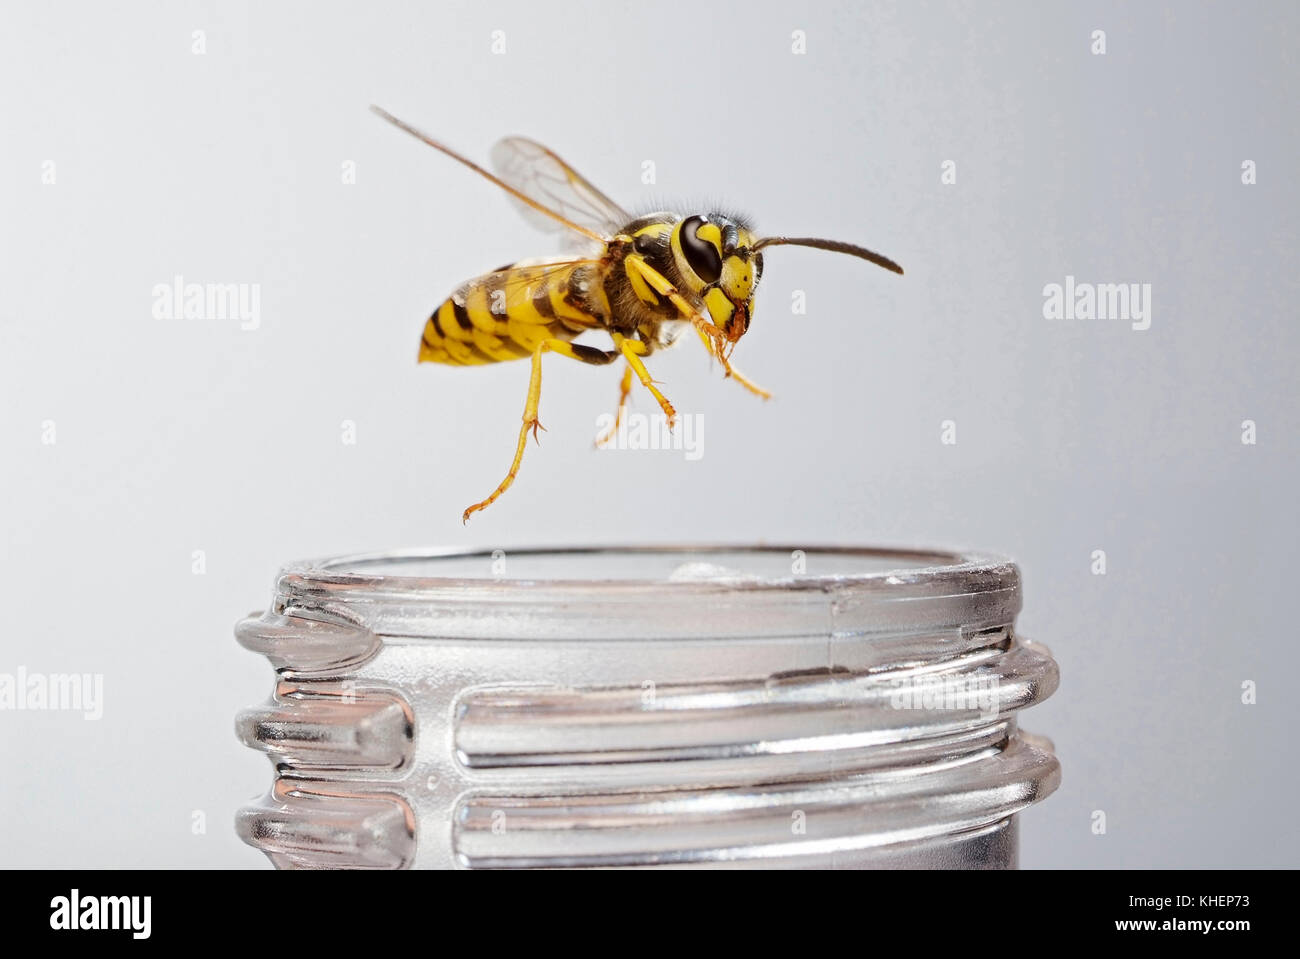 deutsche wespe vespula germanica auf eine limonade flasche im flug deutschland stockfoto. Black Bedroom Furniture Sets. Home Design Ideas